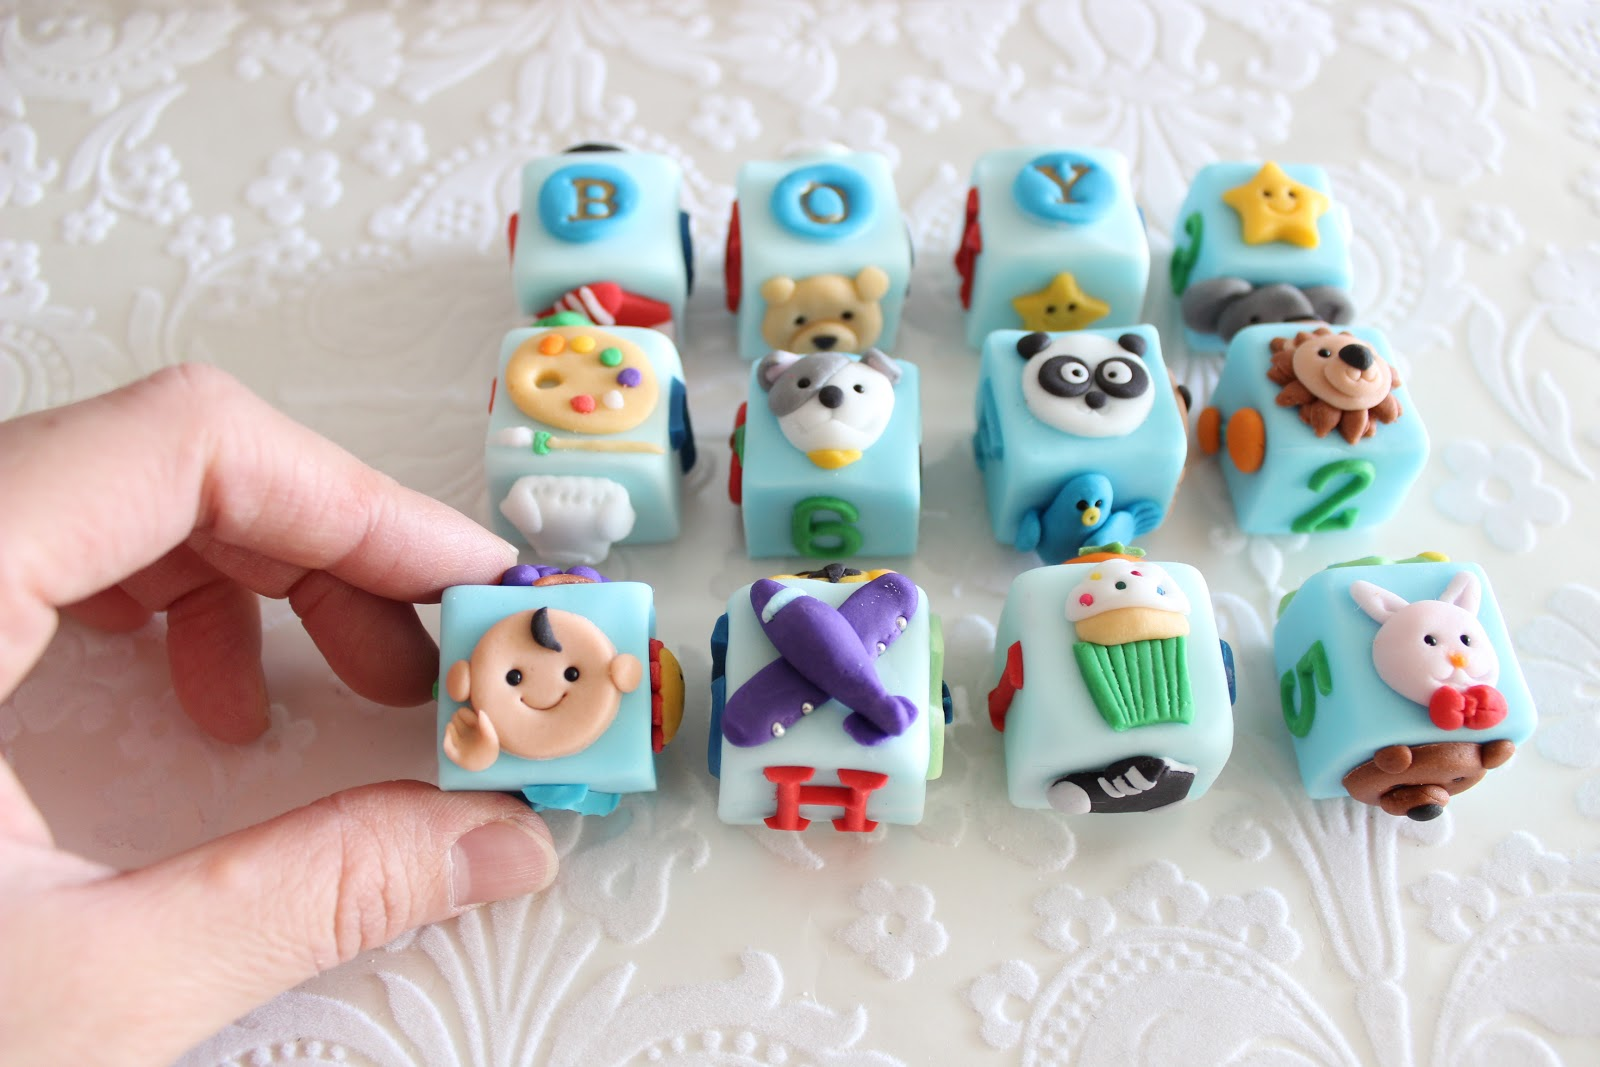 Aren't these Baby blocks so cute?